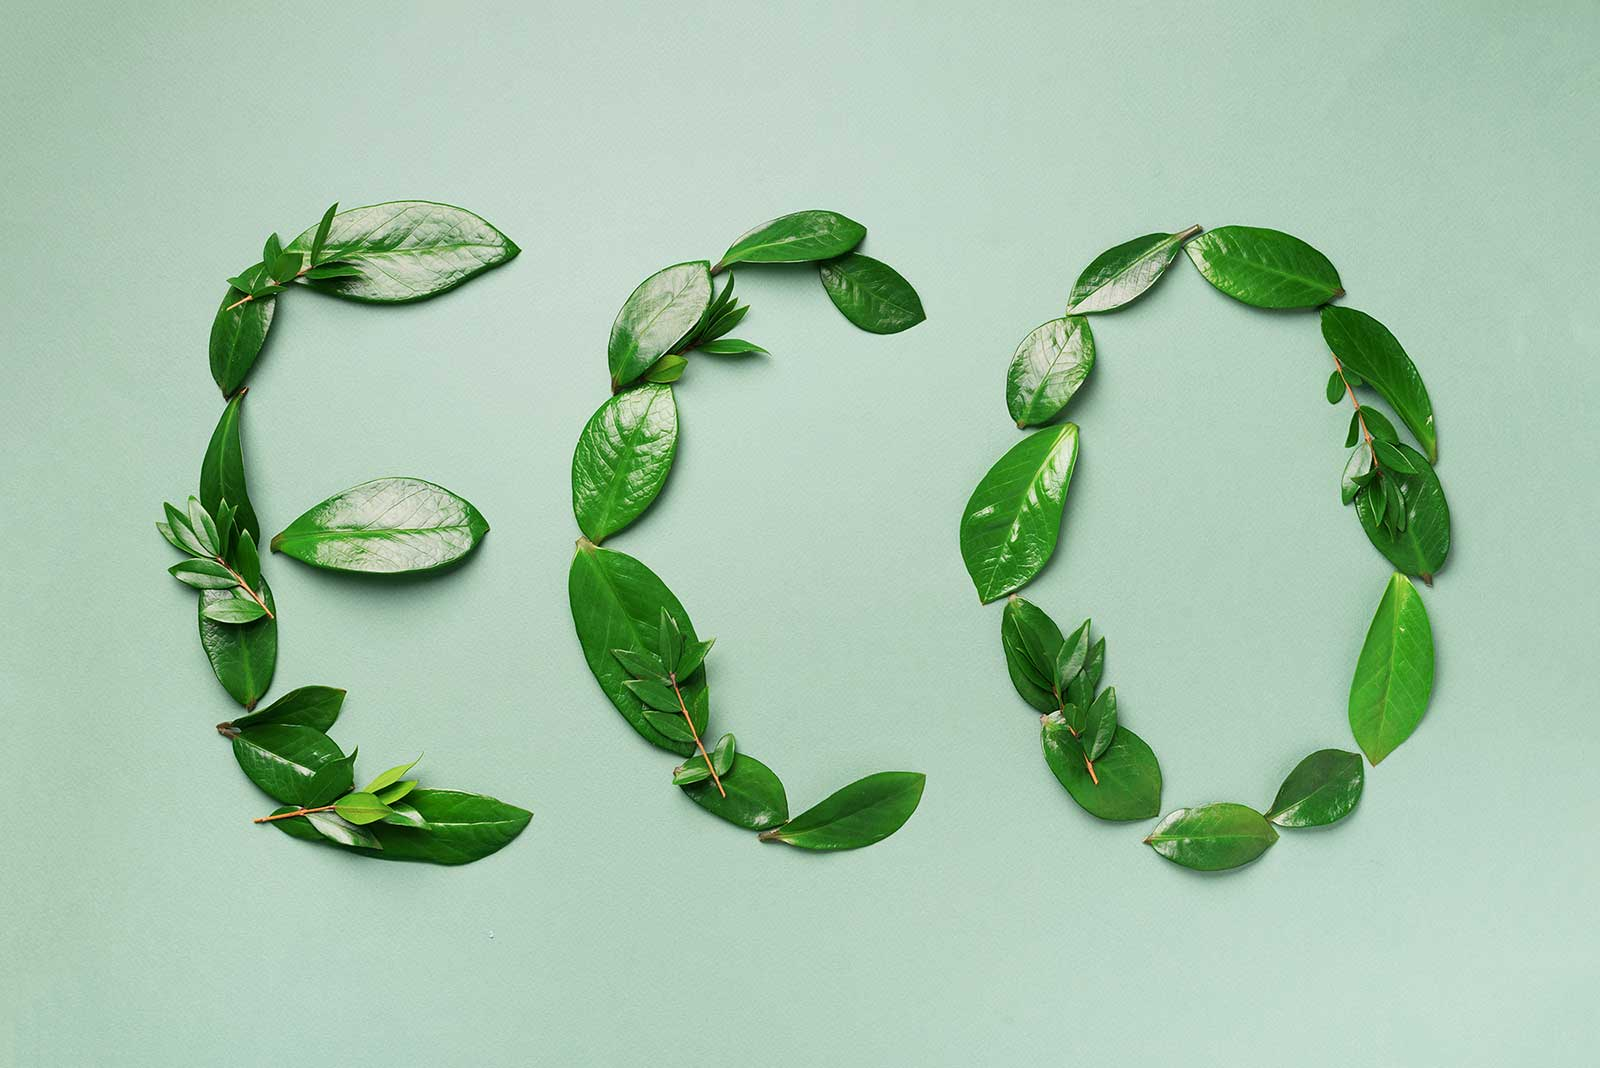 What is Greenwashing? And how can I spot it?